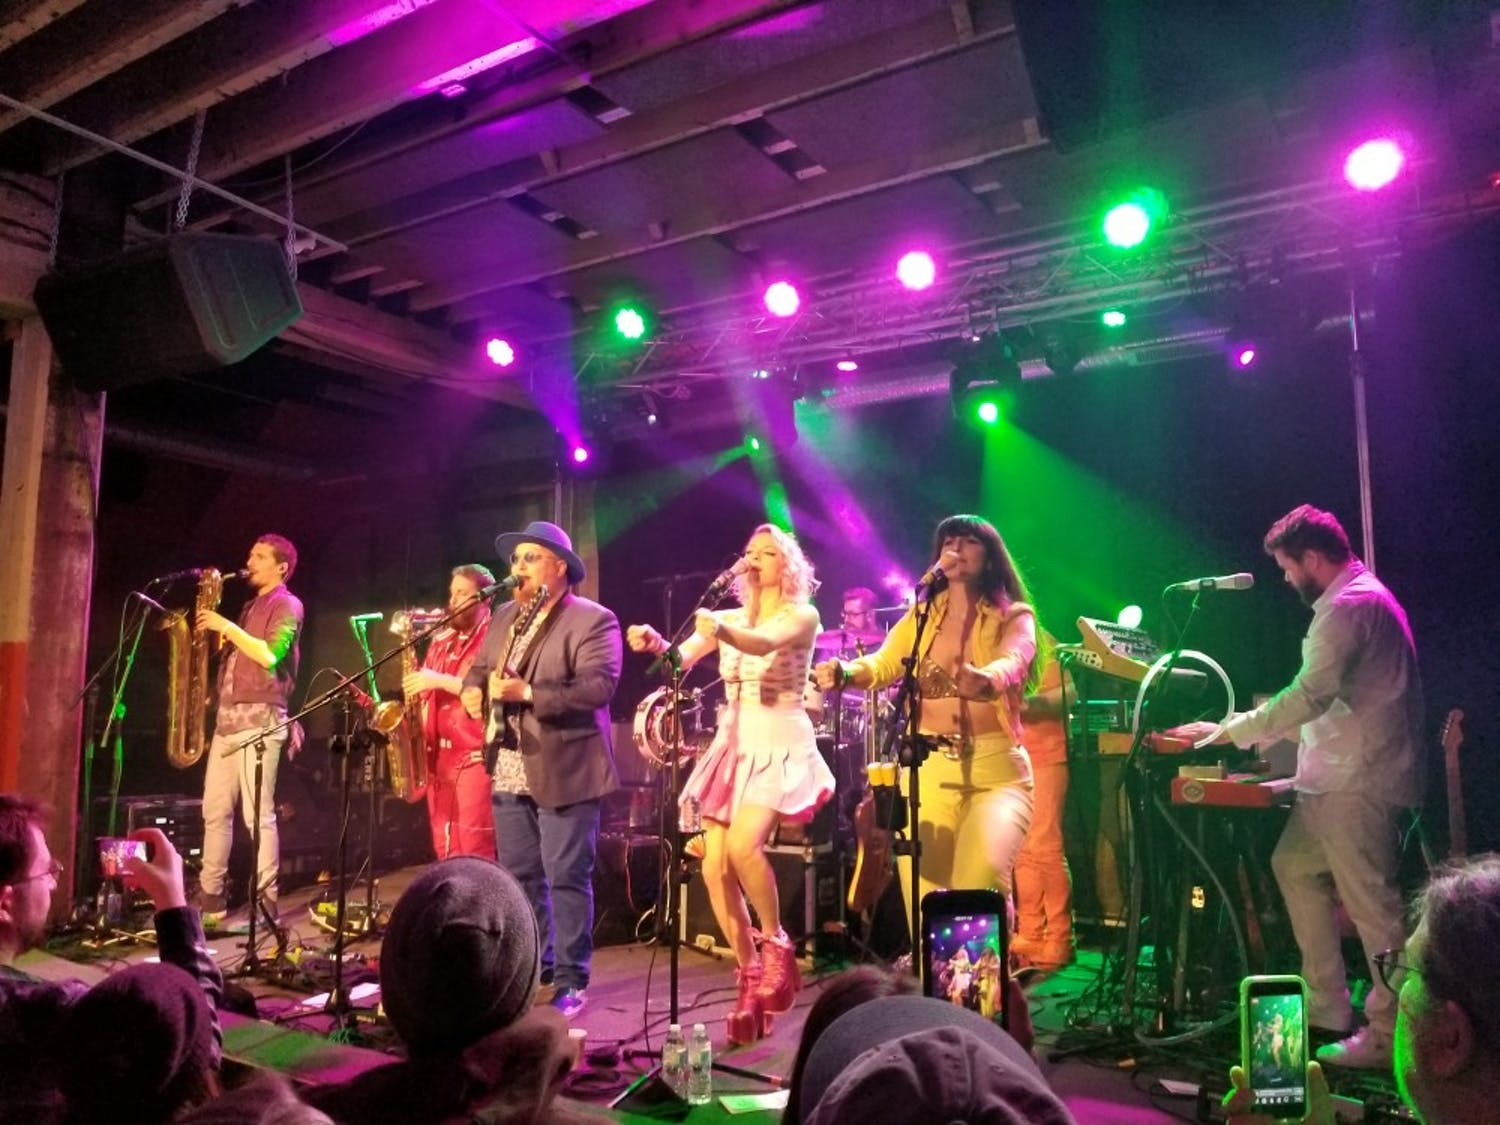 """Brooklyn funk rockers Turquaz took to downtown Buffalo on Tuesday night in a groovy performance. The band is currently on the road and recently released their single """"On The Run,"""" produced by Talking Heads member Jerry Harrison."""